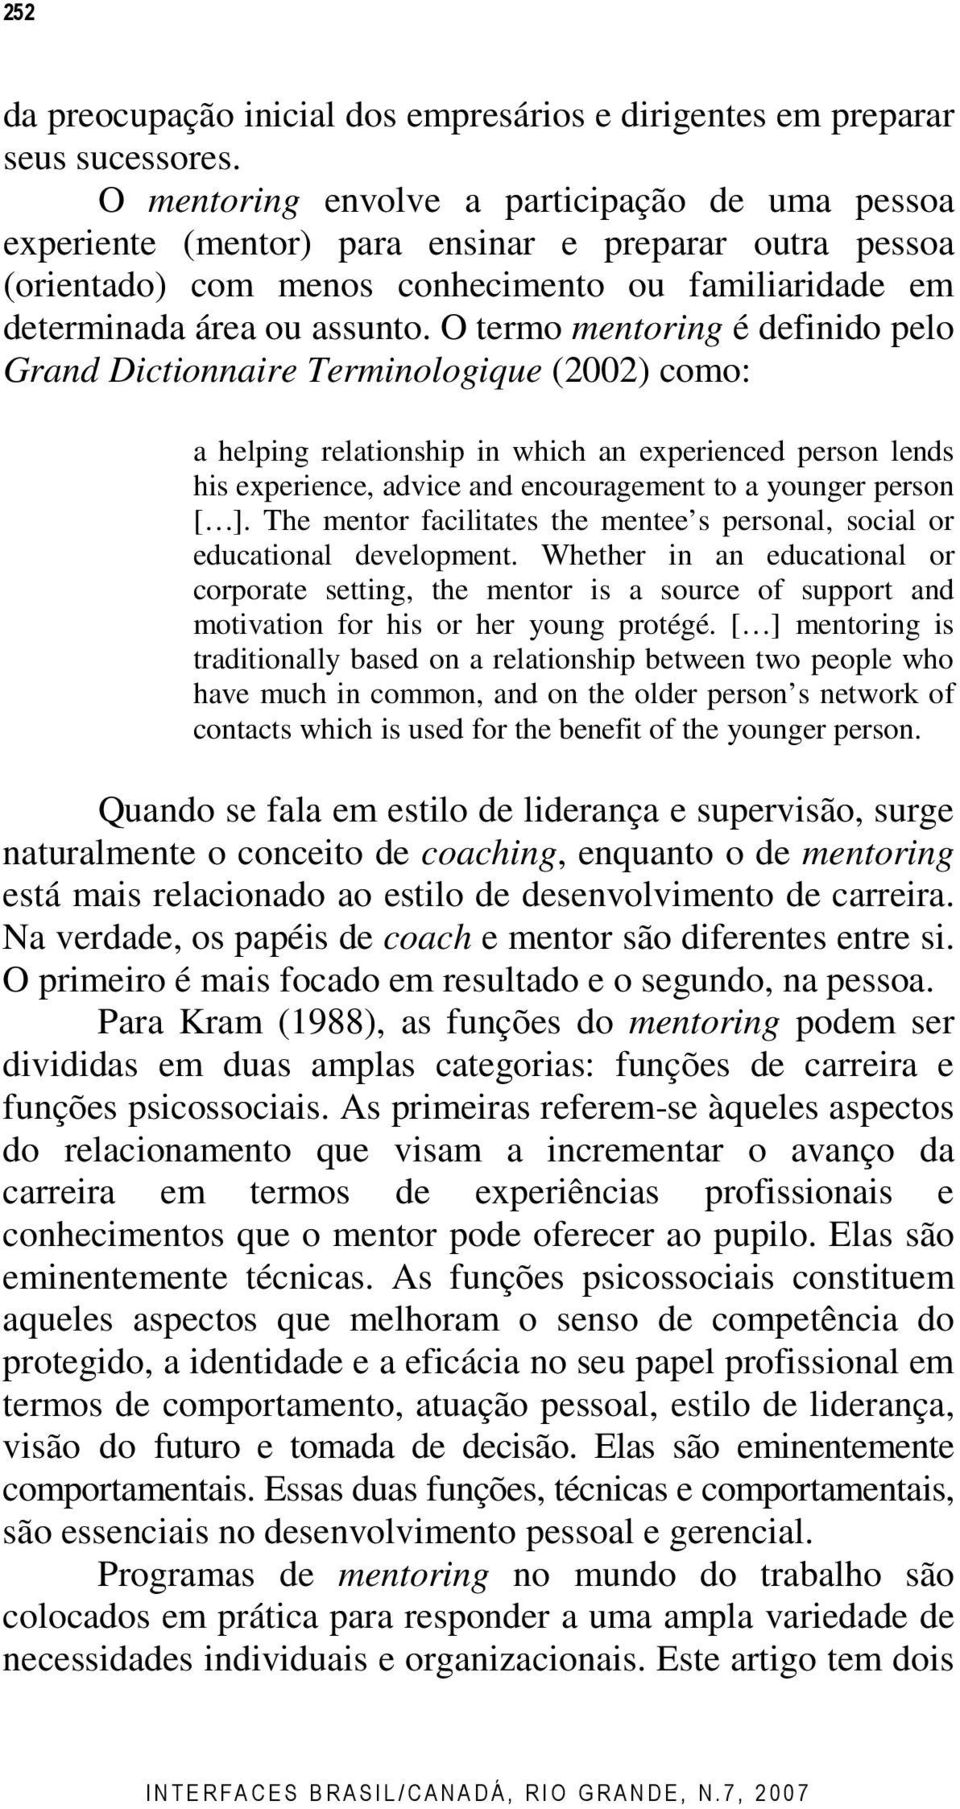 O termo mentoring é definido pelo Grand Dictionnaire Terminologique (2002) como: a helping relationship in which an experienced person lends his experience, advice and encouragement to a younger